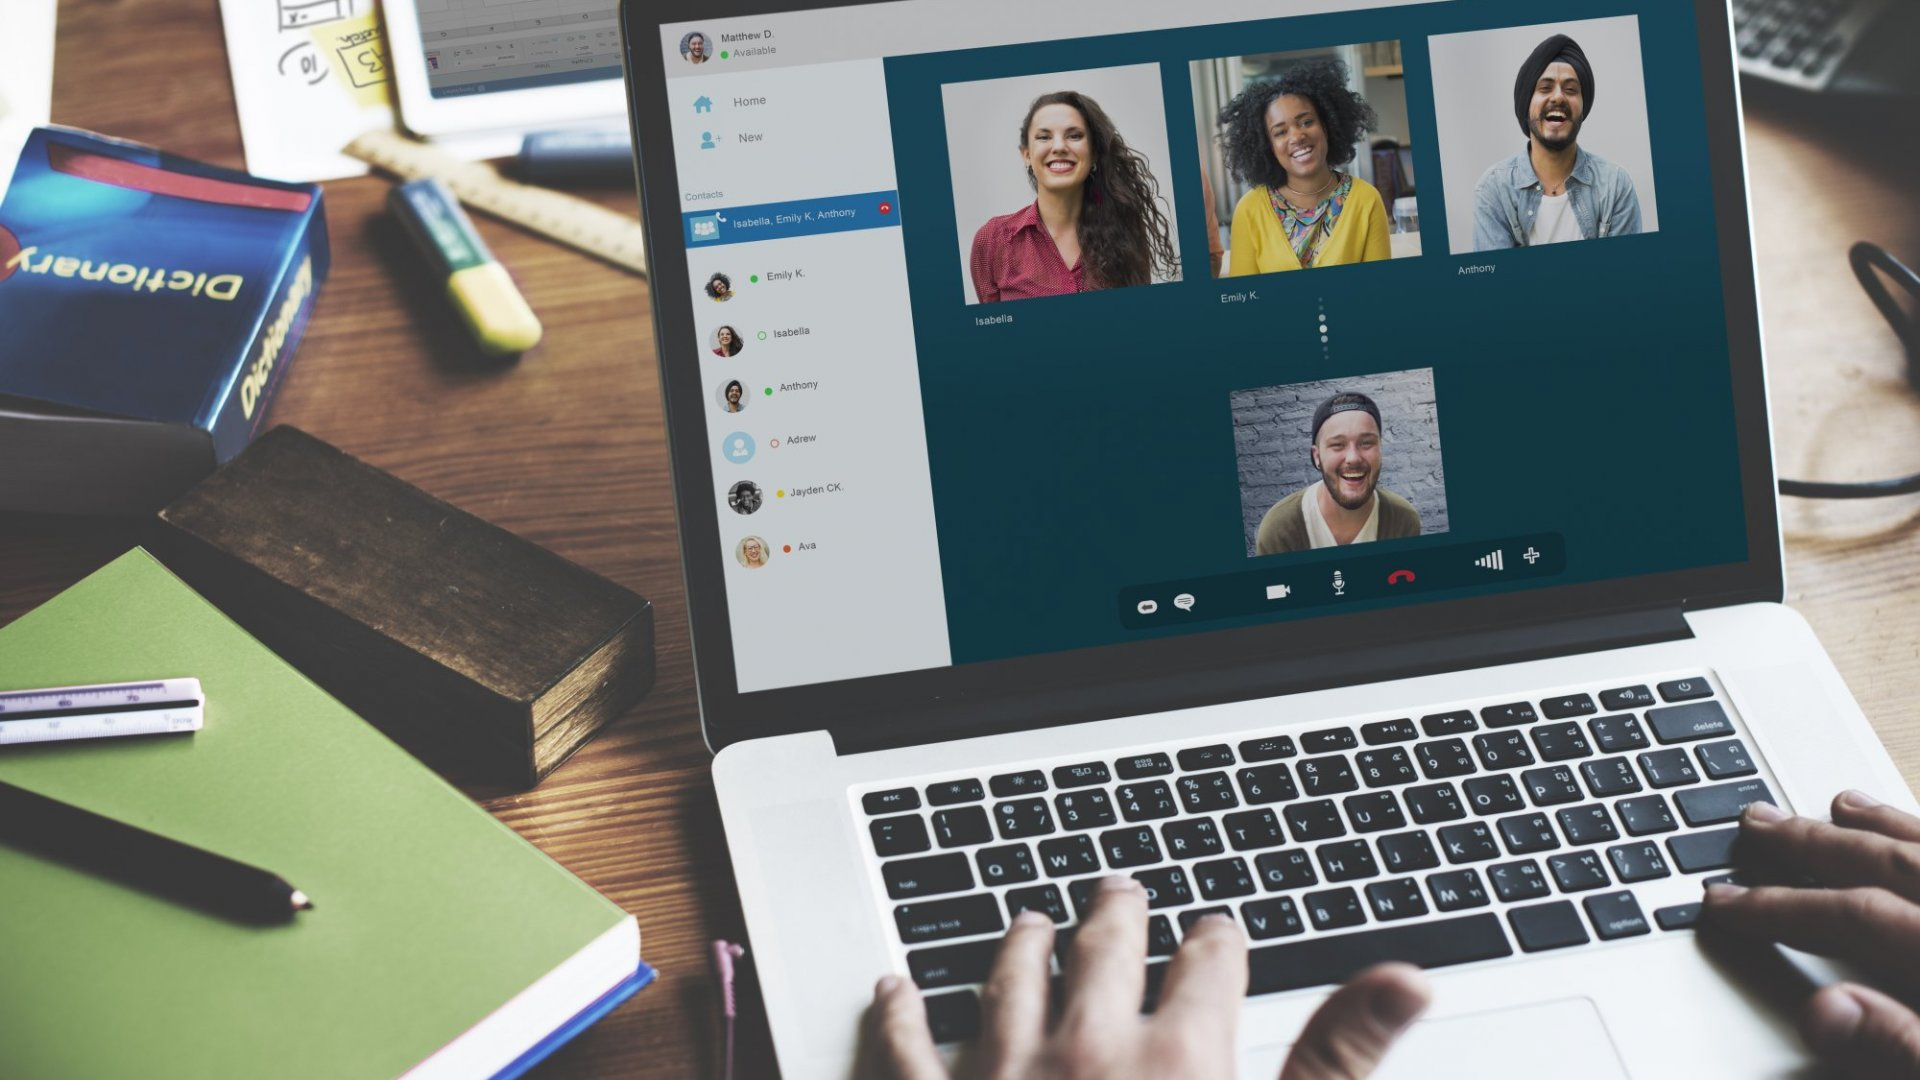 3 Ways to Collaborate Effectively in a Remote Team